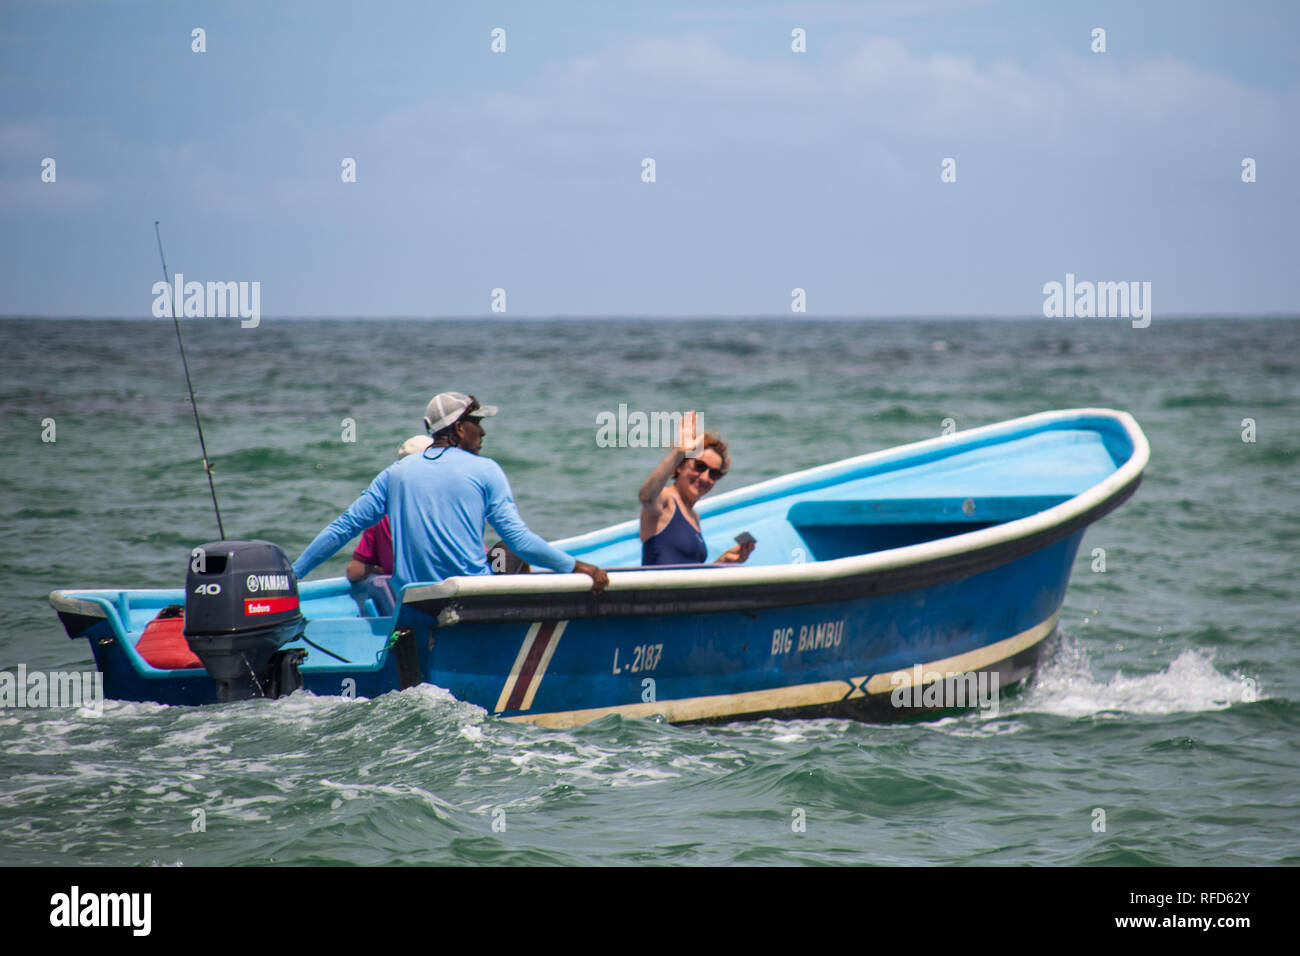 A photo of a boat with two tourists embarking on a dolphin watching trip at Manzanillo, Costa Rica - Stock Image